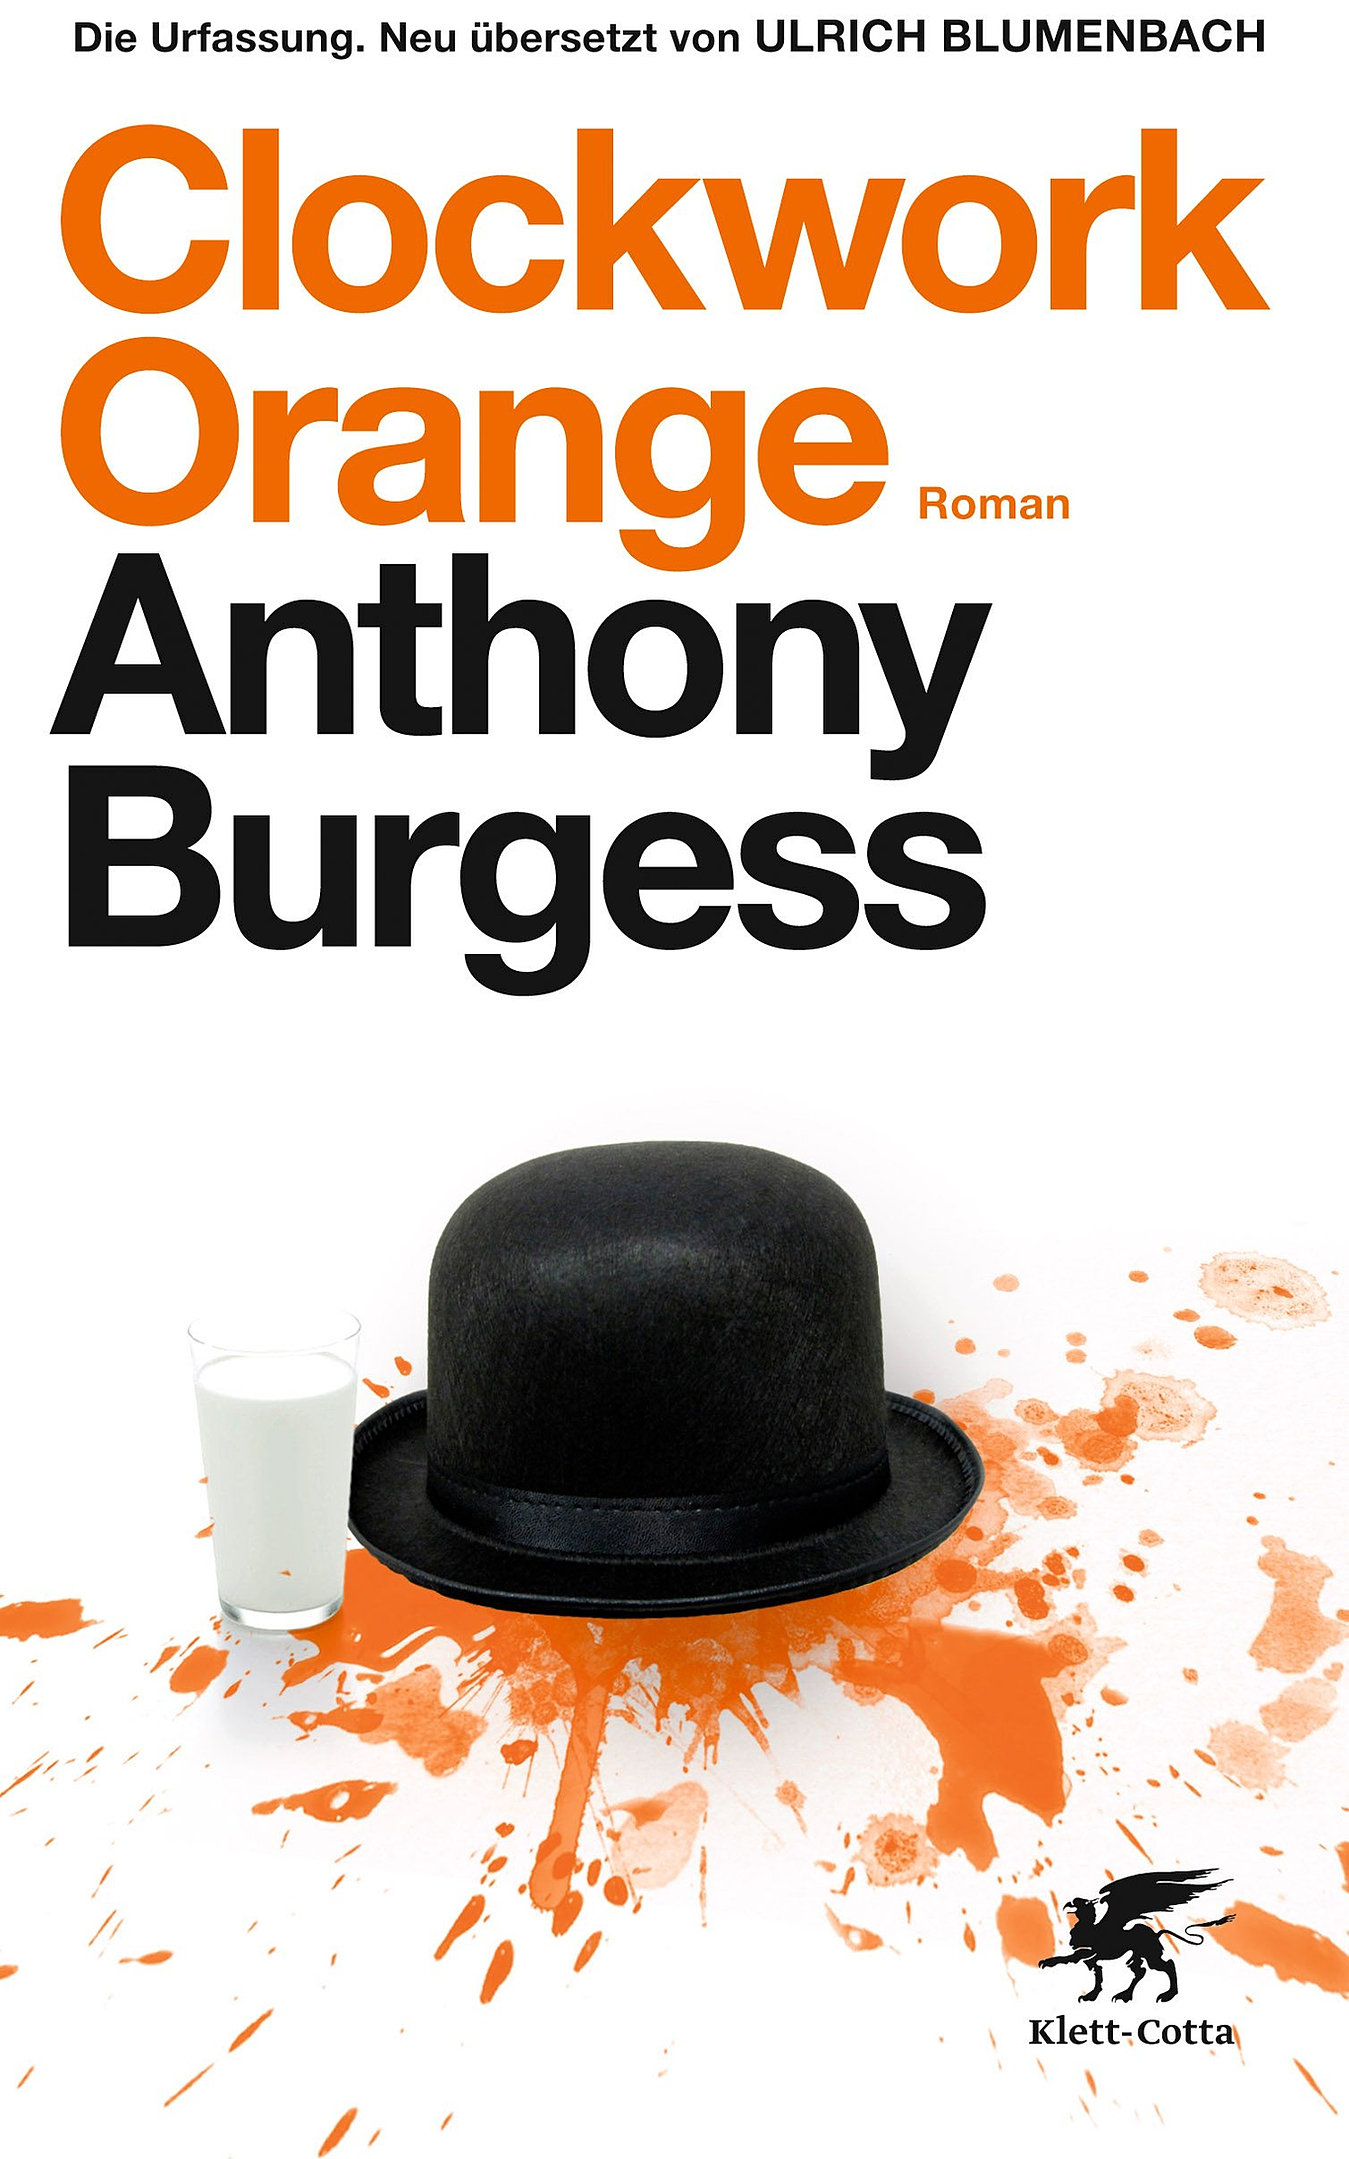 a clockwork orange belonging essay A clockwork orange belonging essay - business plan writing services in gauteng 9 de abril de 2018 / by / in uncategorized / comentários desativados em a clockwork.